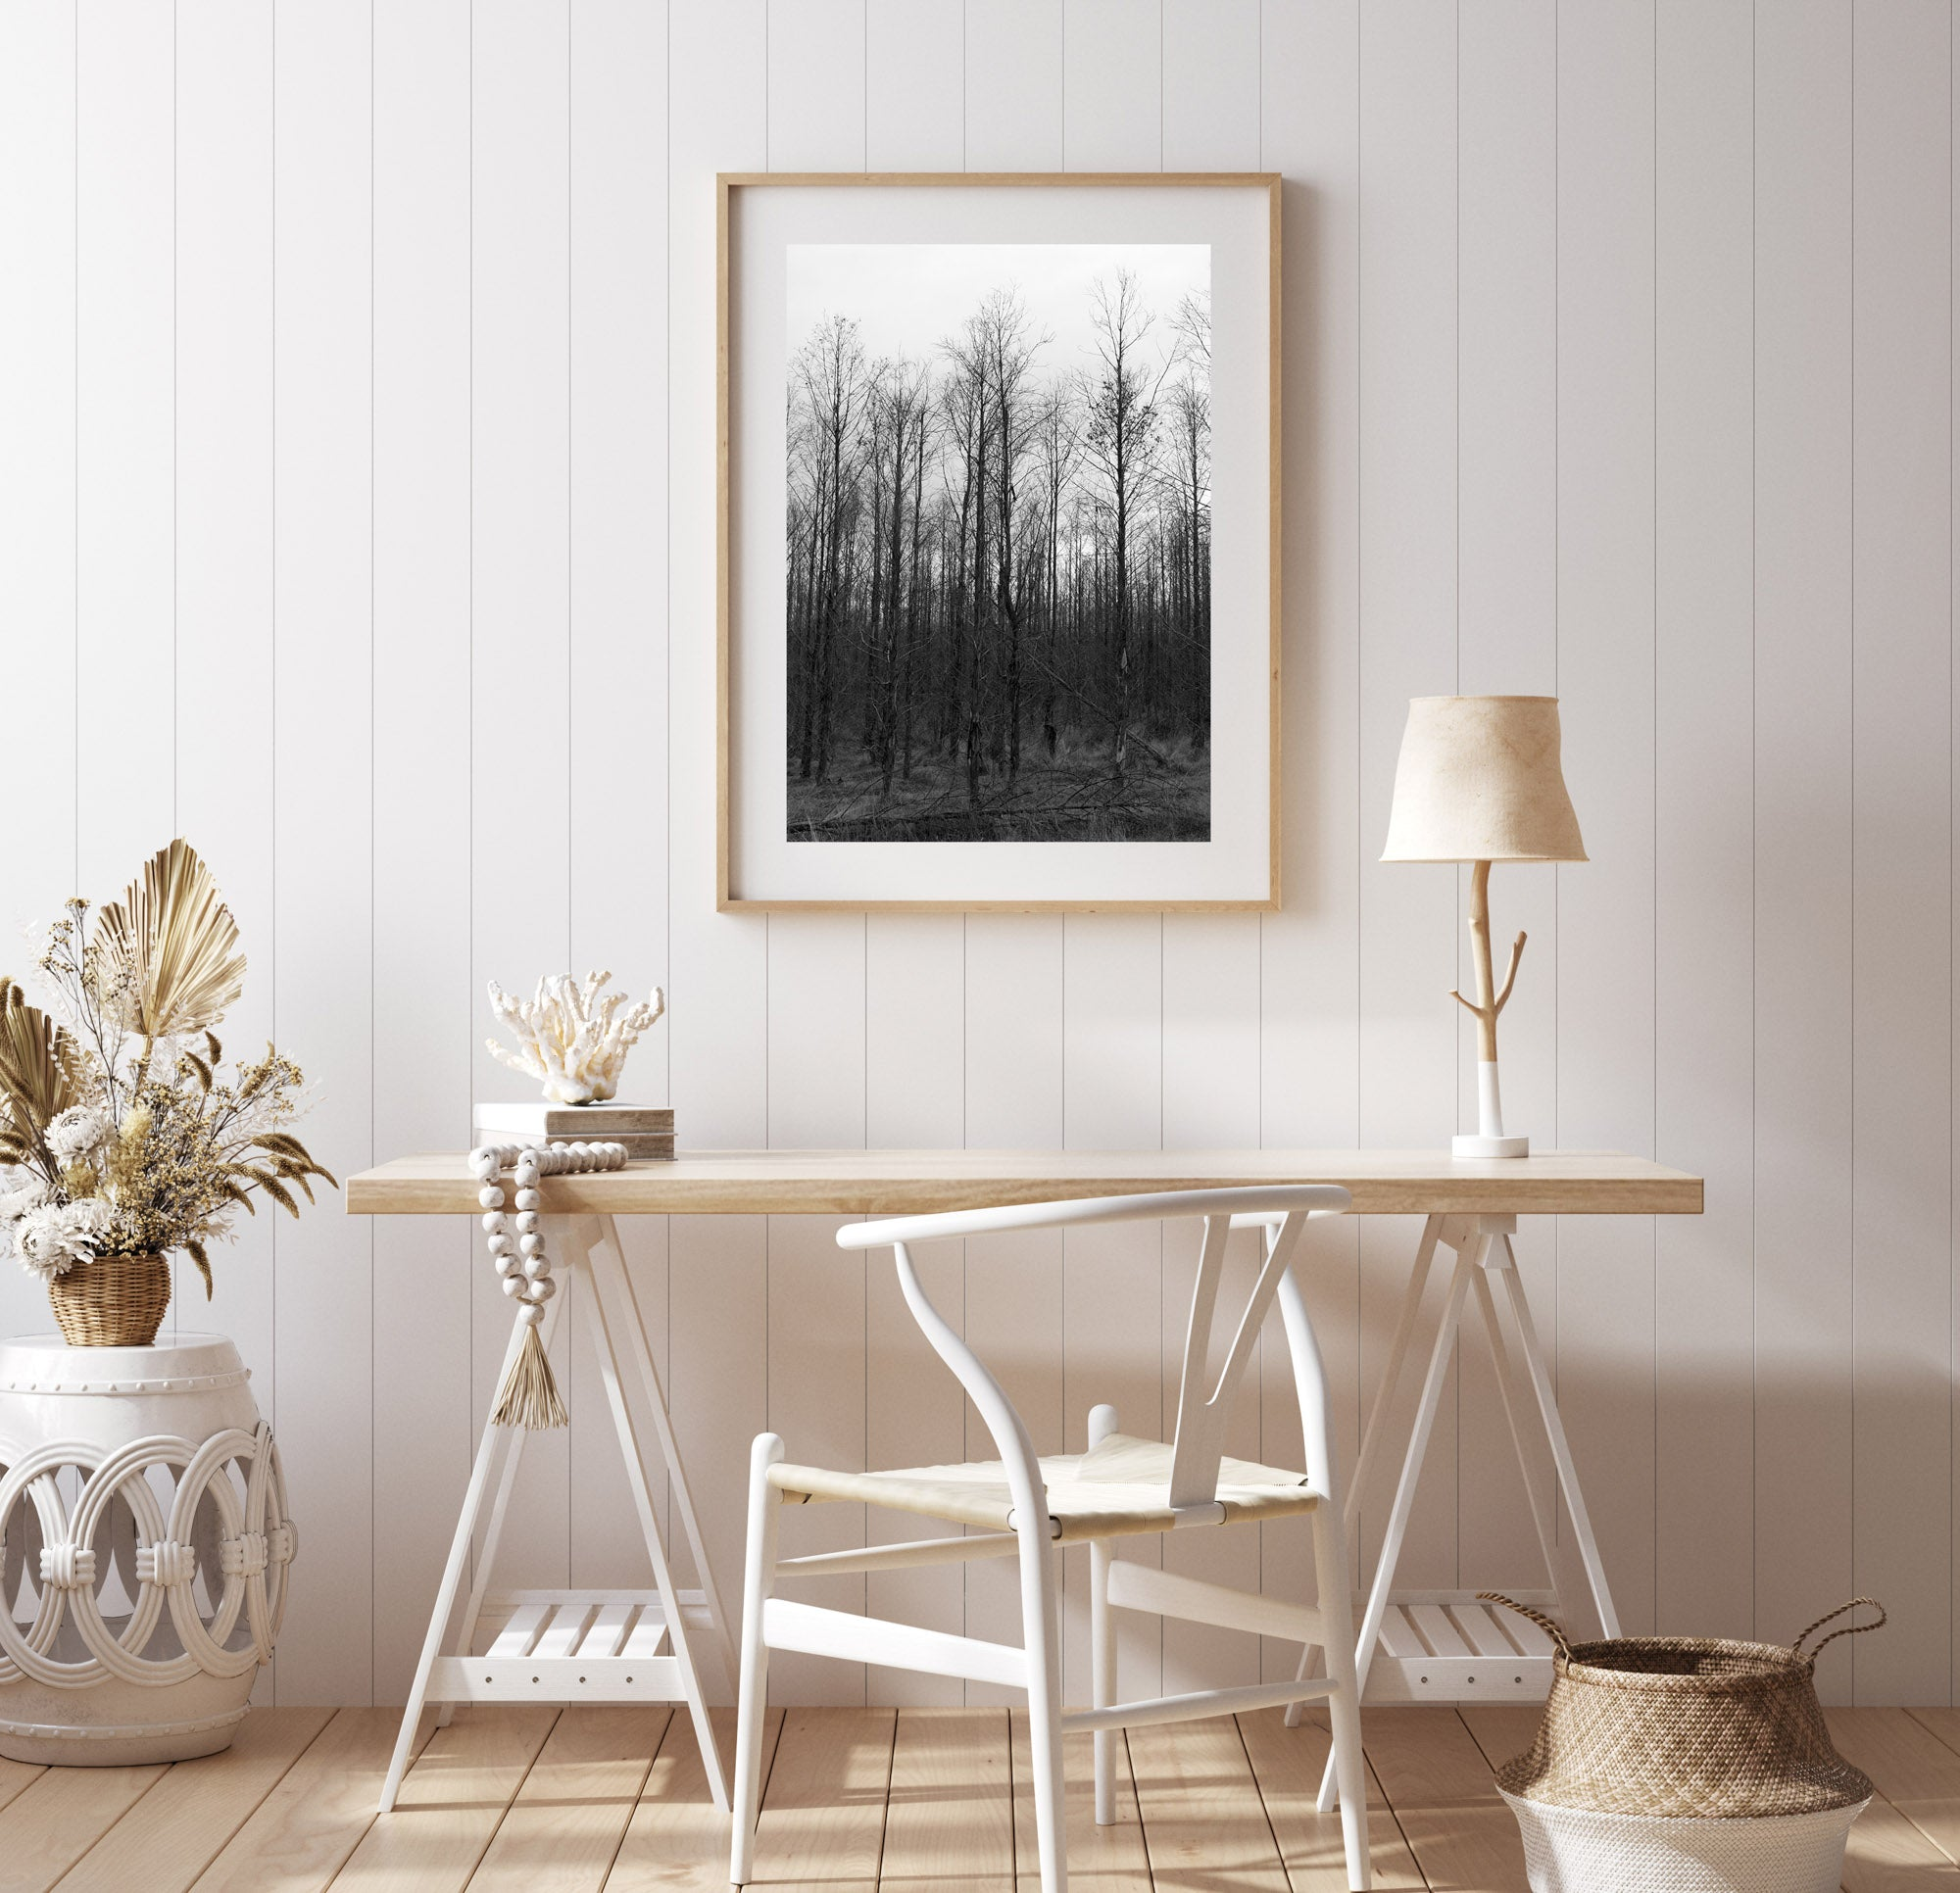 A photograph of Birch trees in a forest. The sky is great & the trees are dark & bare. photography, summer, photography, Artwork Prints, wall art,  Photographic prints, summer, Framed artwork,  Australian  Photography, wall art, beach prints, coastal prints, Tasmania, cradle mountain, Film photography, Vintage photo, style  Interior design, Pictures for sale, film photography, photography art, Hobart, nature,